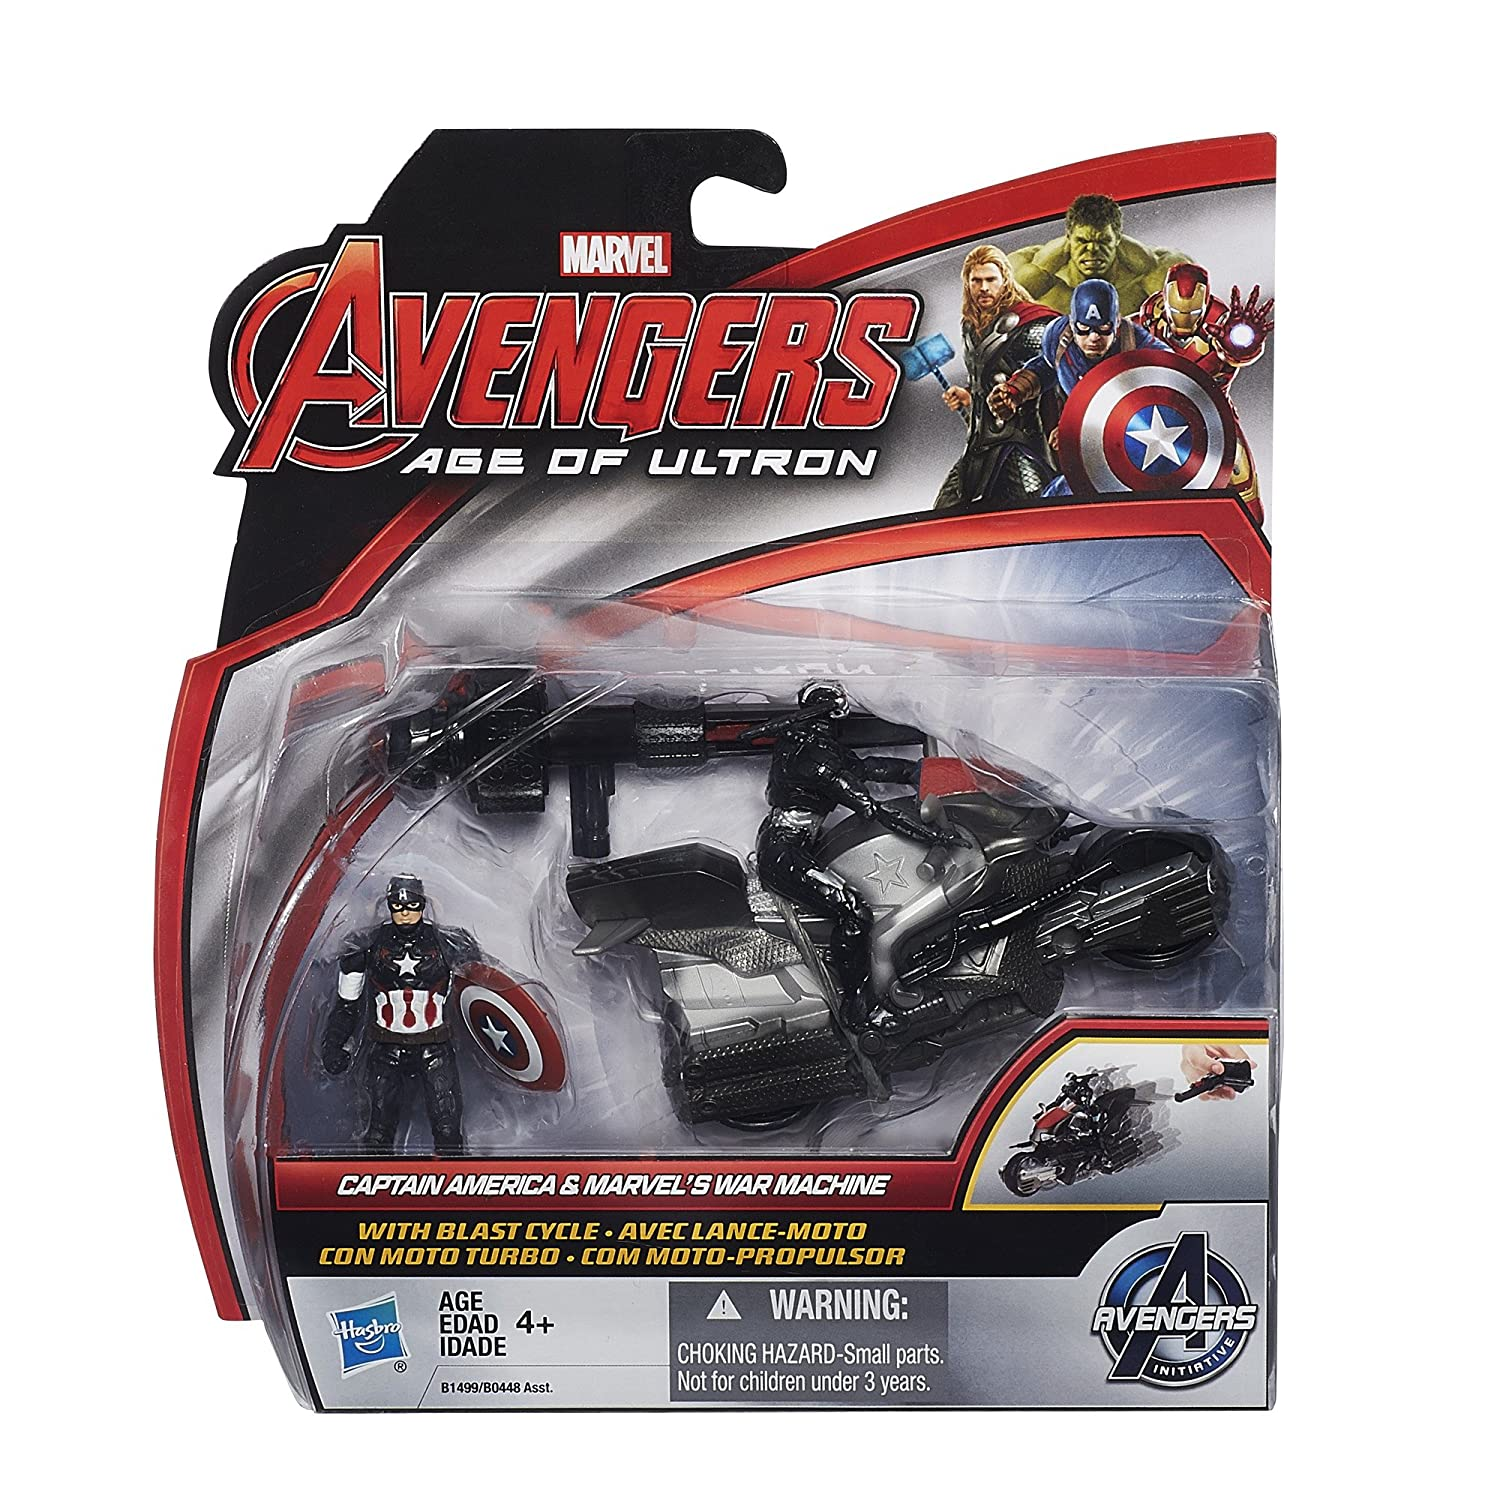 Amazon.com: Marvel Avengers Age of Ultron Captain America and Marvels War Machine 2.5 Inch Figures with Blast Cycle: Toys & Games